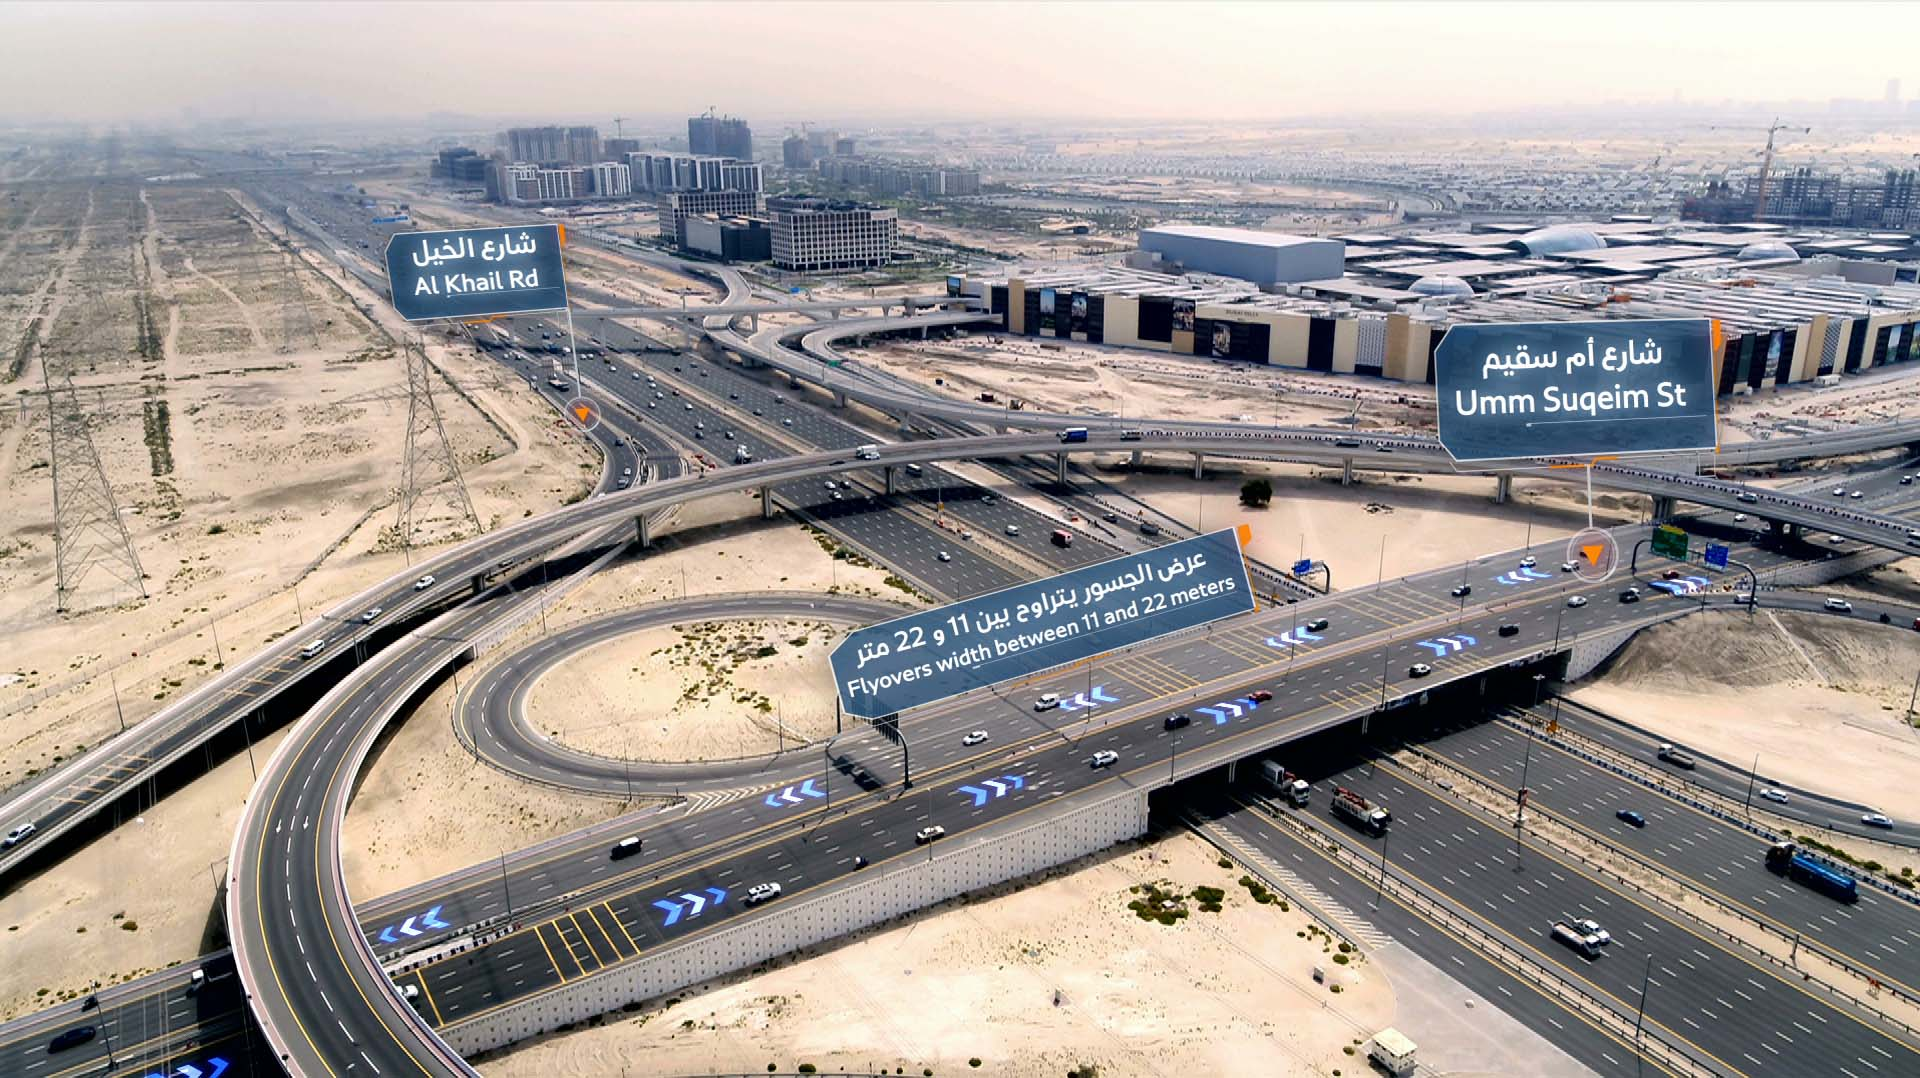 MBR Infrastructure works at Dubai Hills